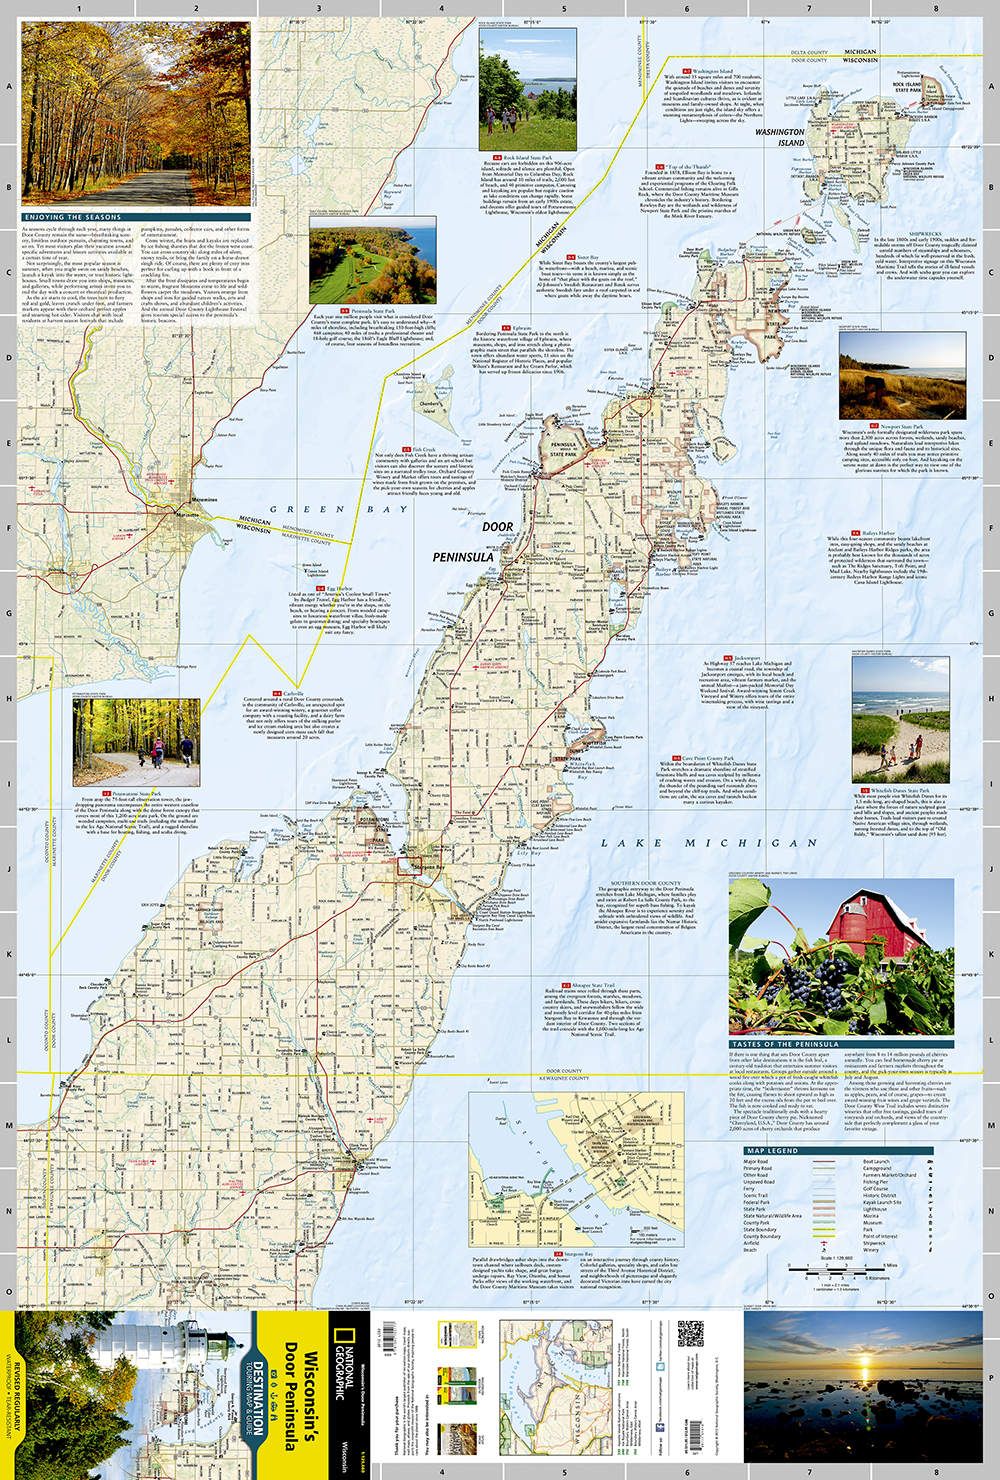 wisconsin u0026 39 s door peninsula destination map